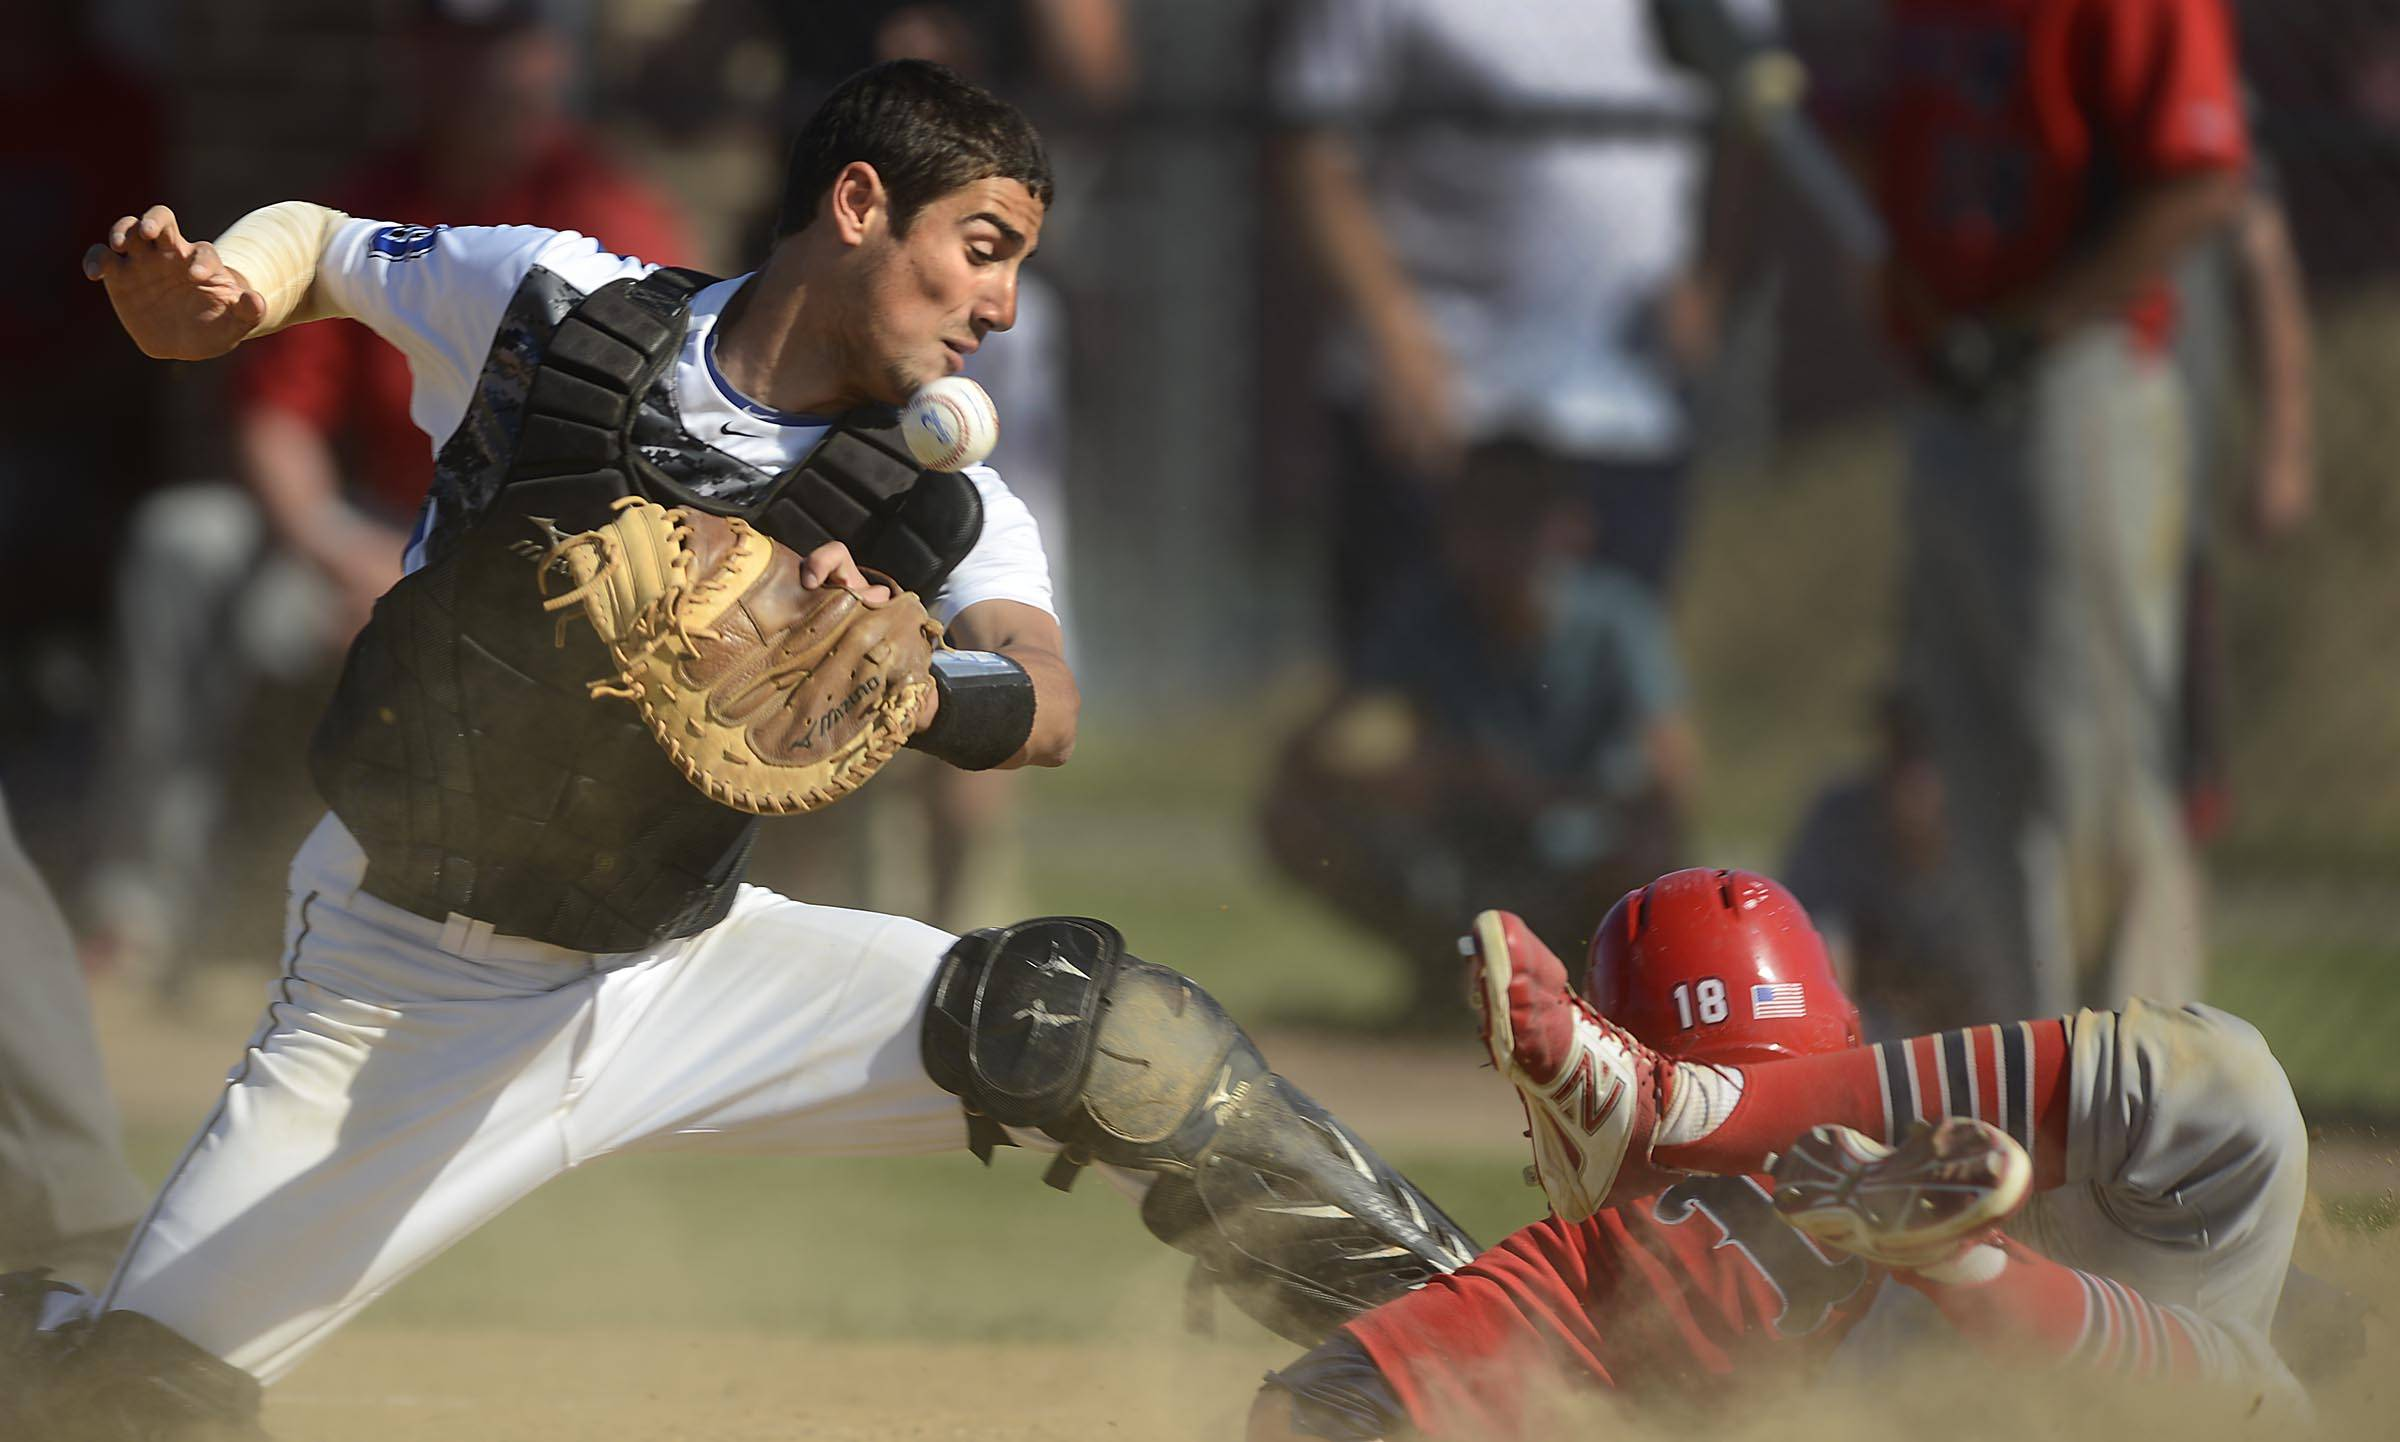 St. Charles North catcher Kyle Khoury loses the ball as he turns to tag South Elgin's Nick Menken in the first inning in the Class 4A Schaumburg sectional semifinal Thursday.